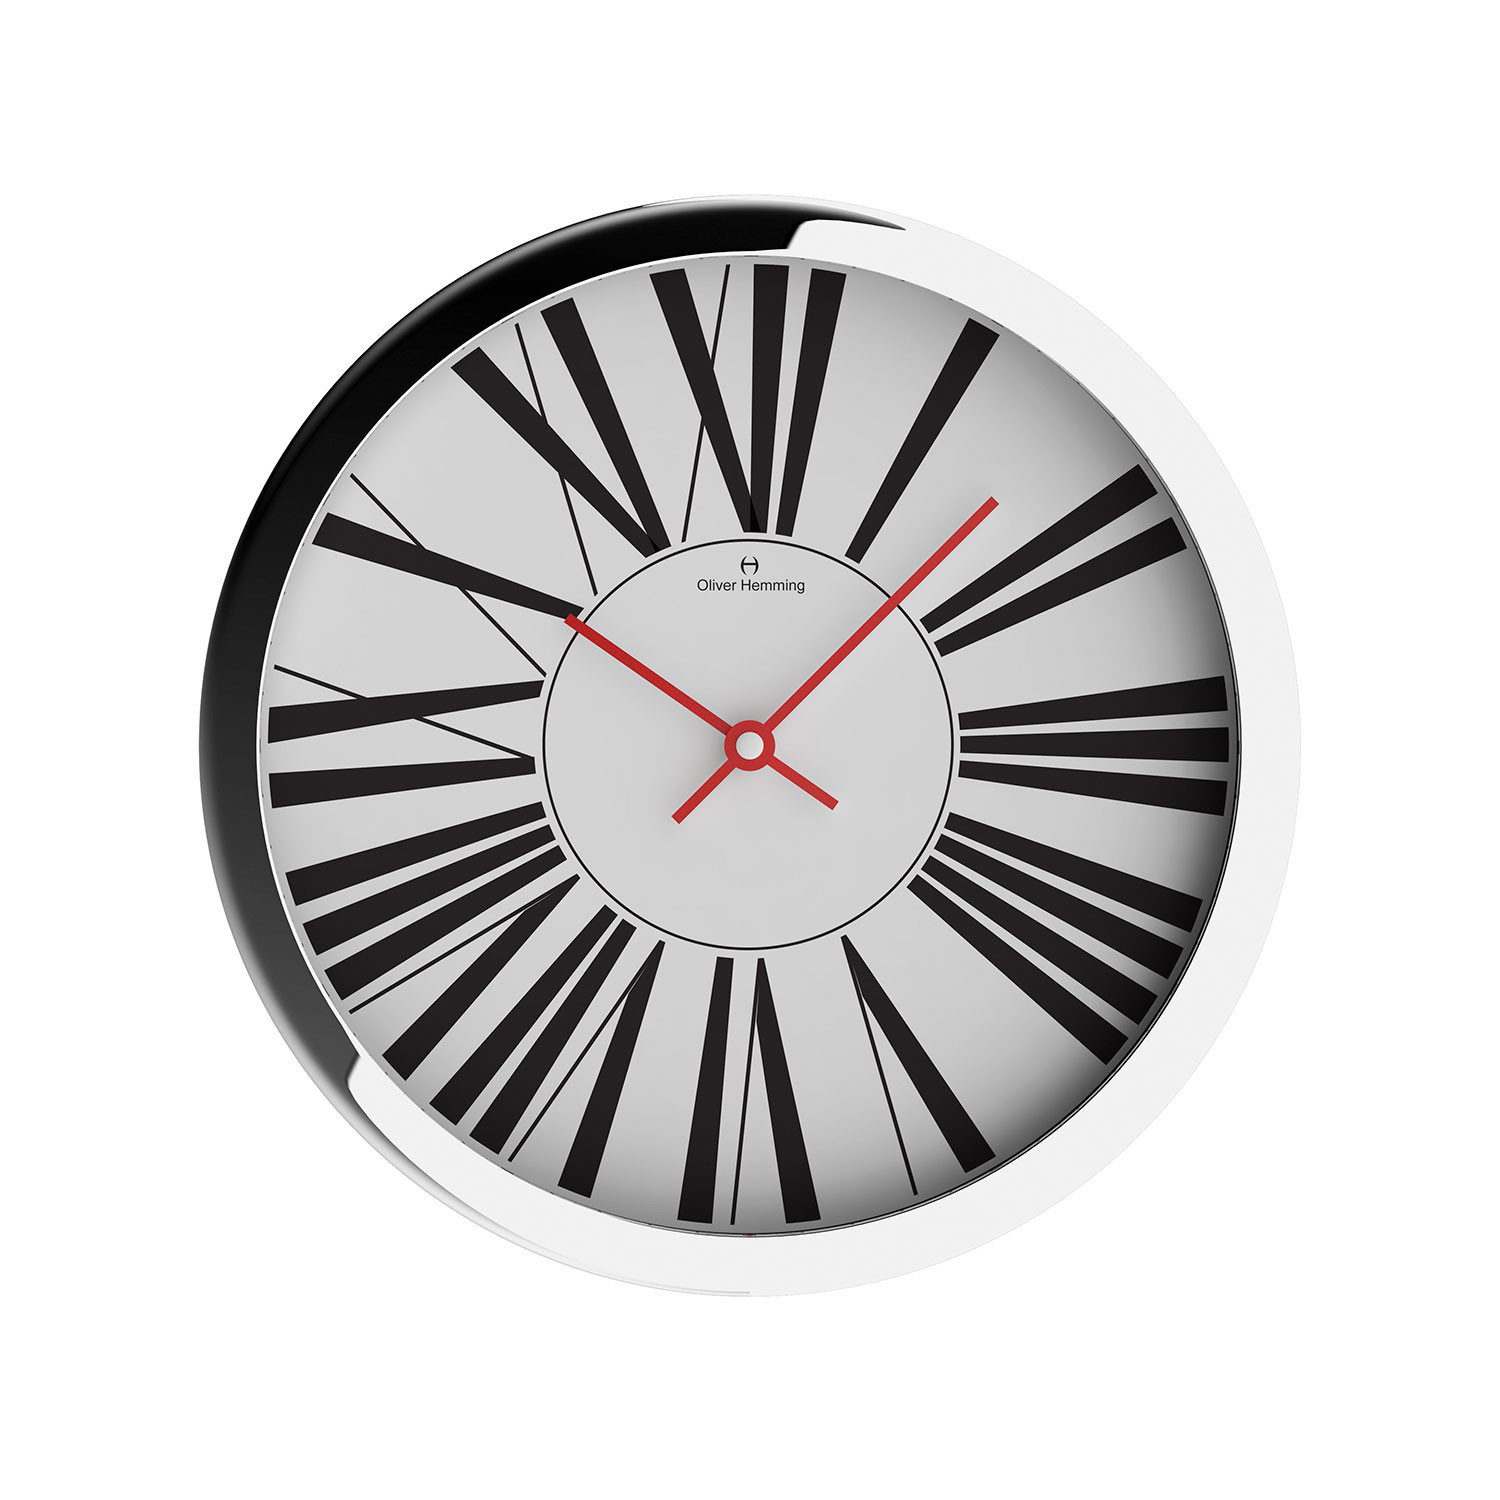 Duplex collection 16 wall clock w403s53w oliver for Touch of modern clock